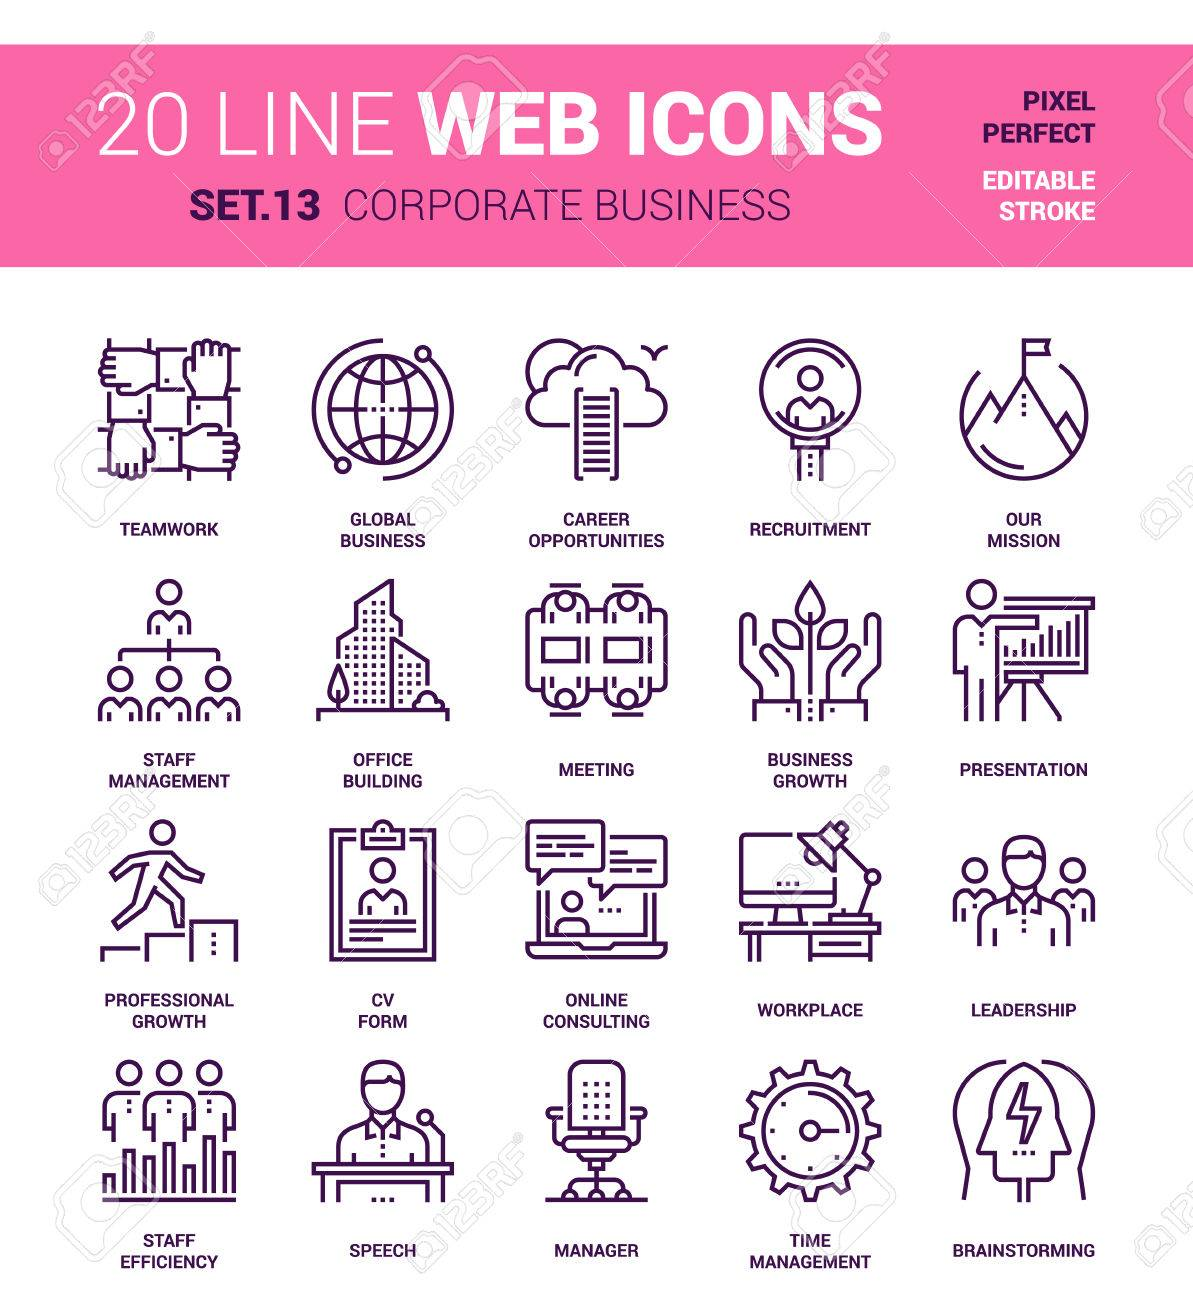 set of corporate business line web icons. Each icon with adjustable strokes neatly designed on pixel perfect 64X64 size grid. Fully editable and easy to use. - 54381258